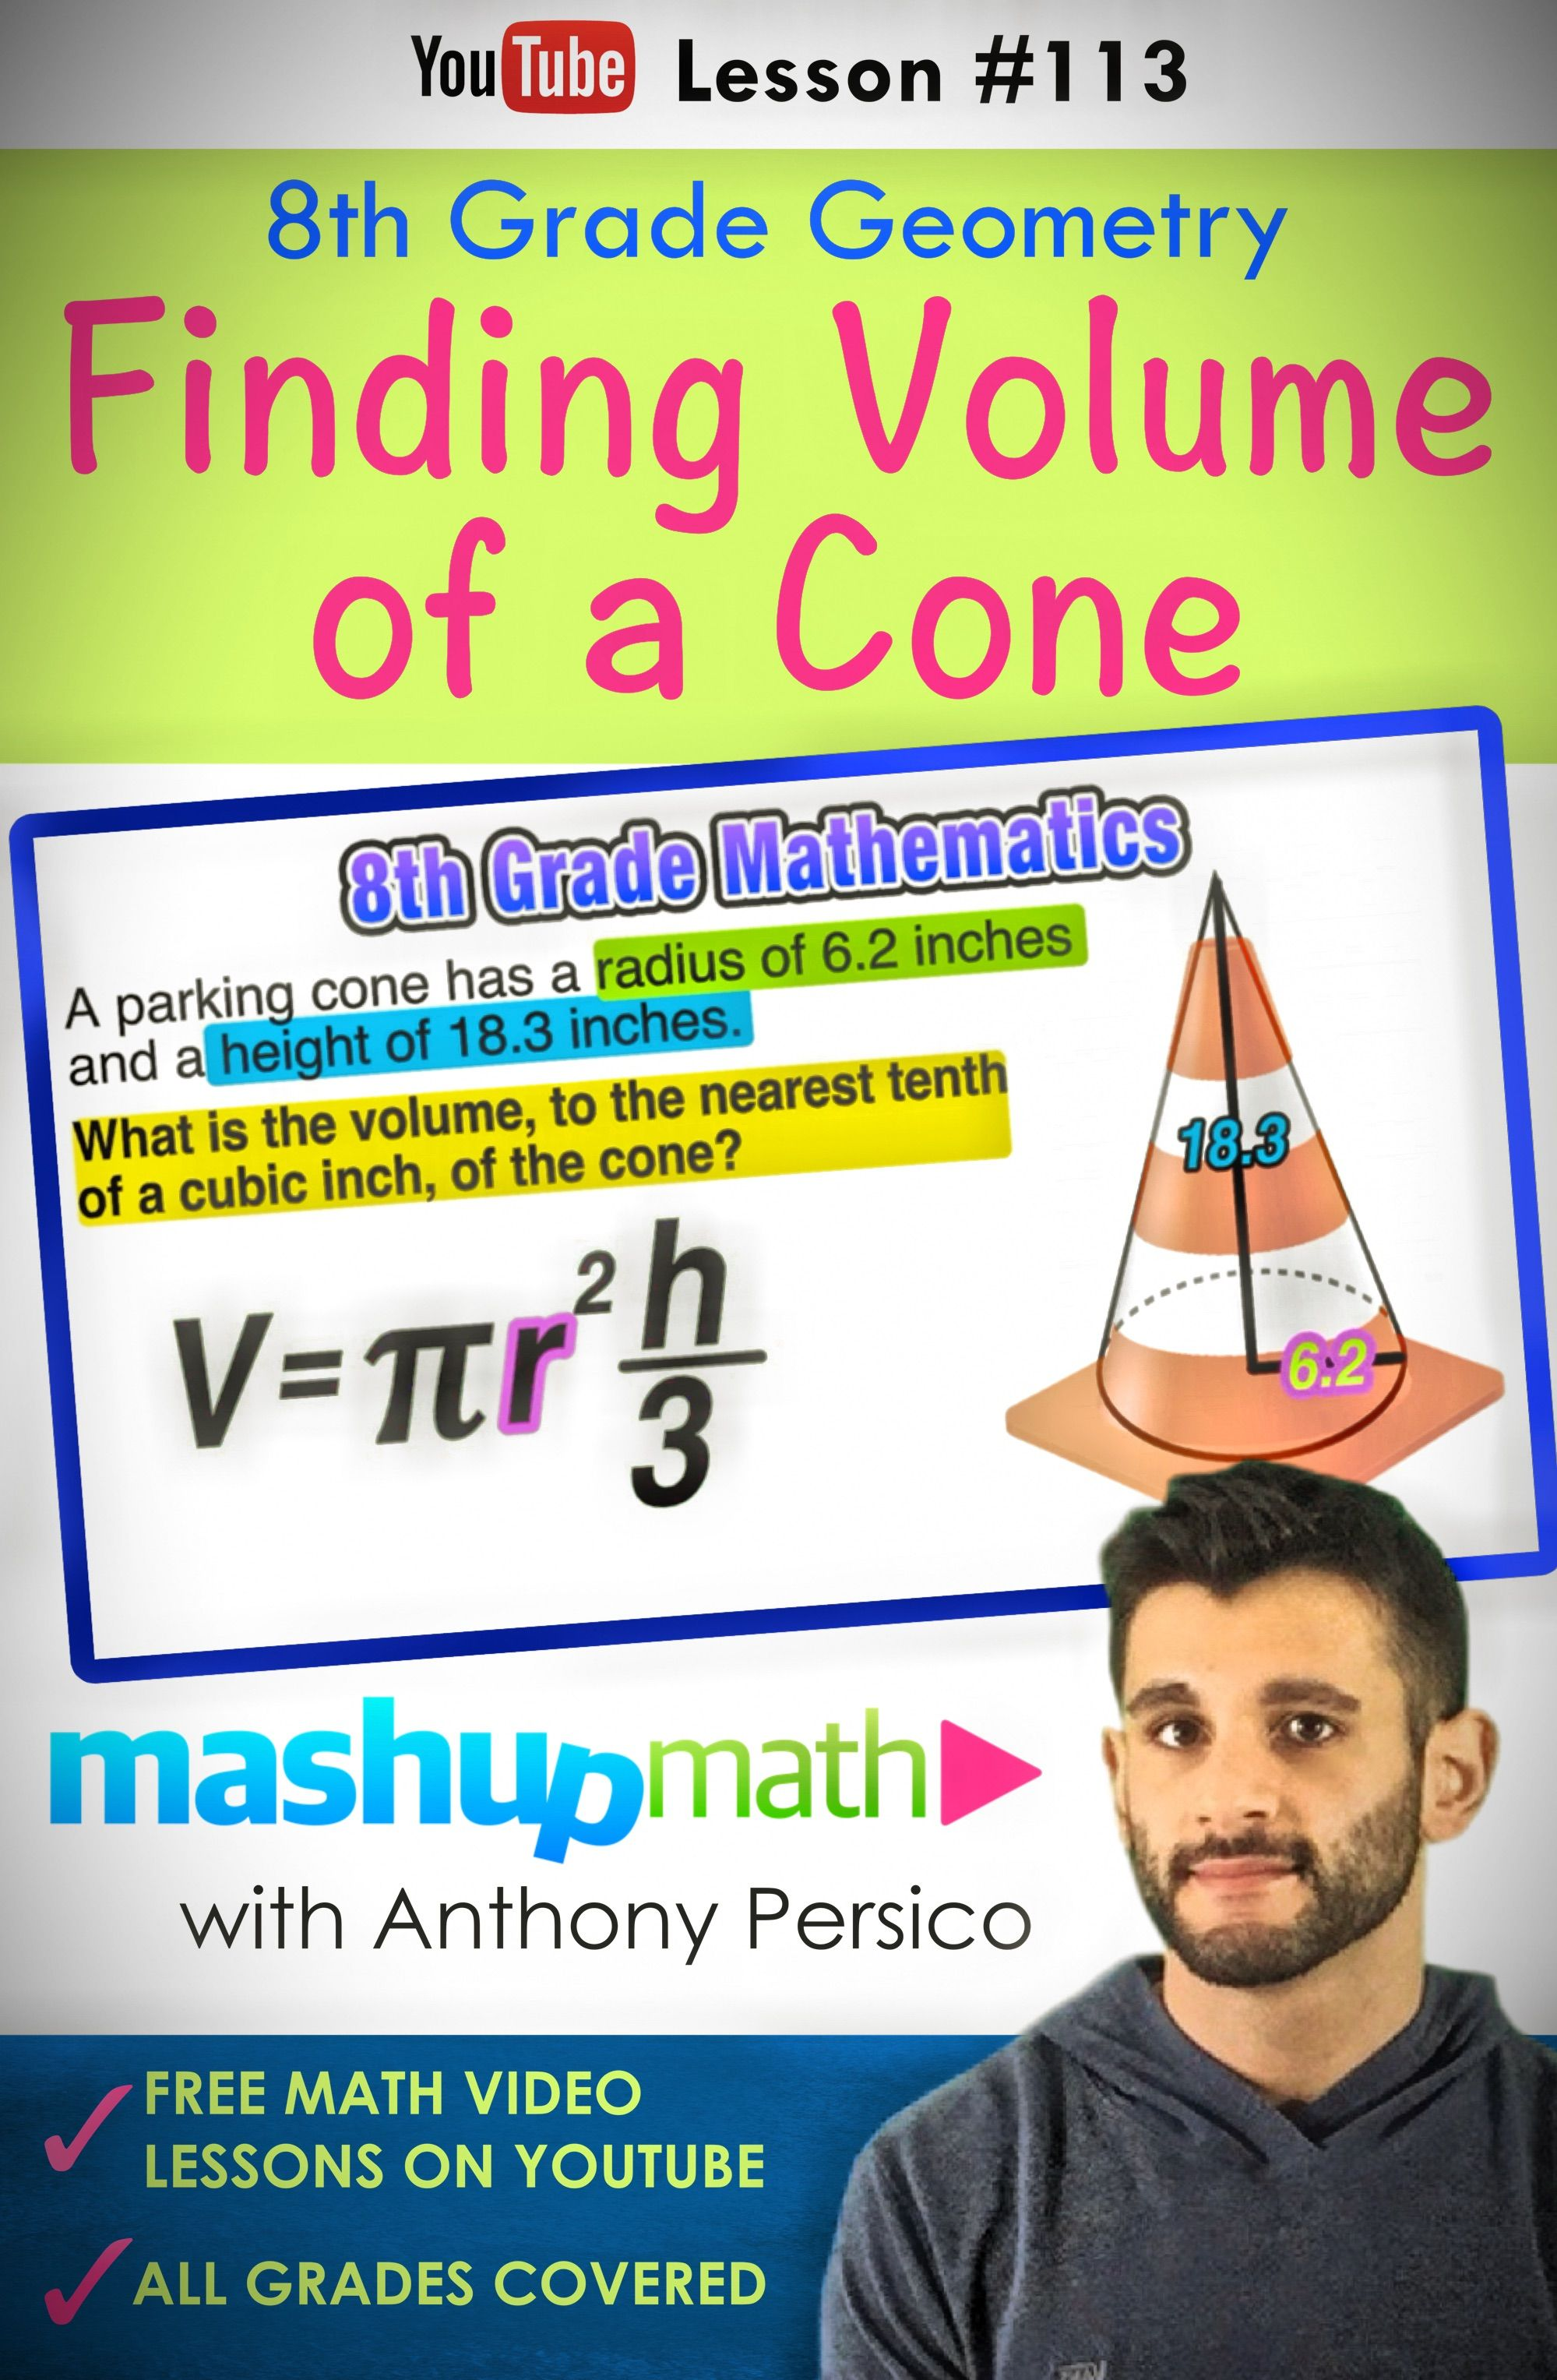 Check Out Our Latest Cool Math Video Lesson On Finding The